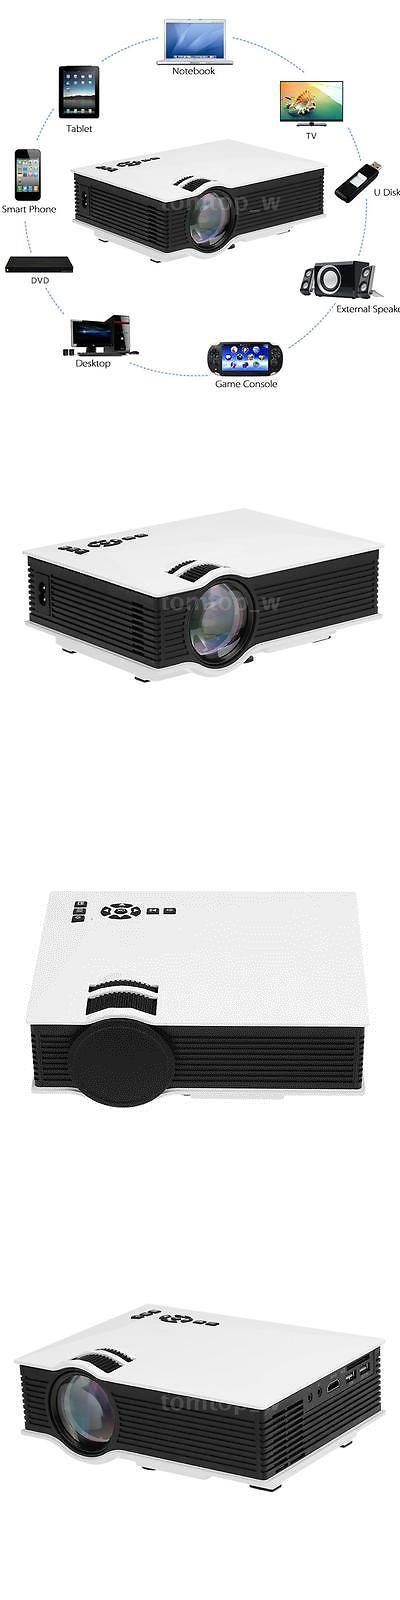 Home Theater Projectors: Uc46 Wifi Portable Mini Hd Led Video Home Theater Cinema Projector Miracast B7z5 BUY IT NOW ONLY: $67.95